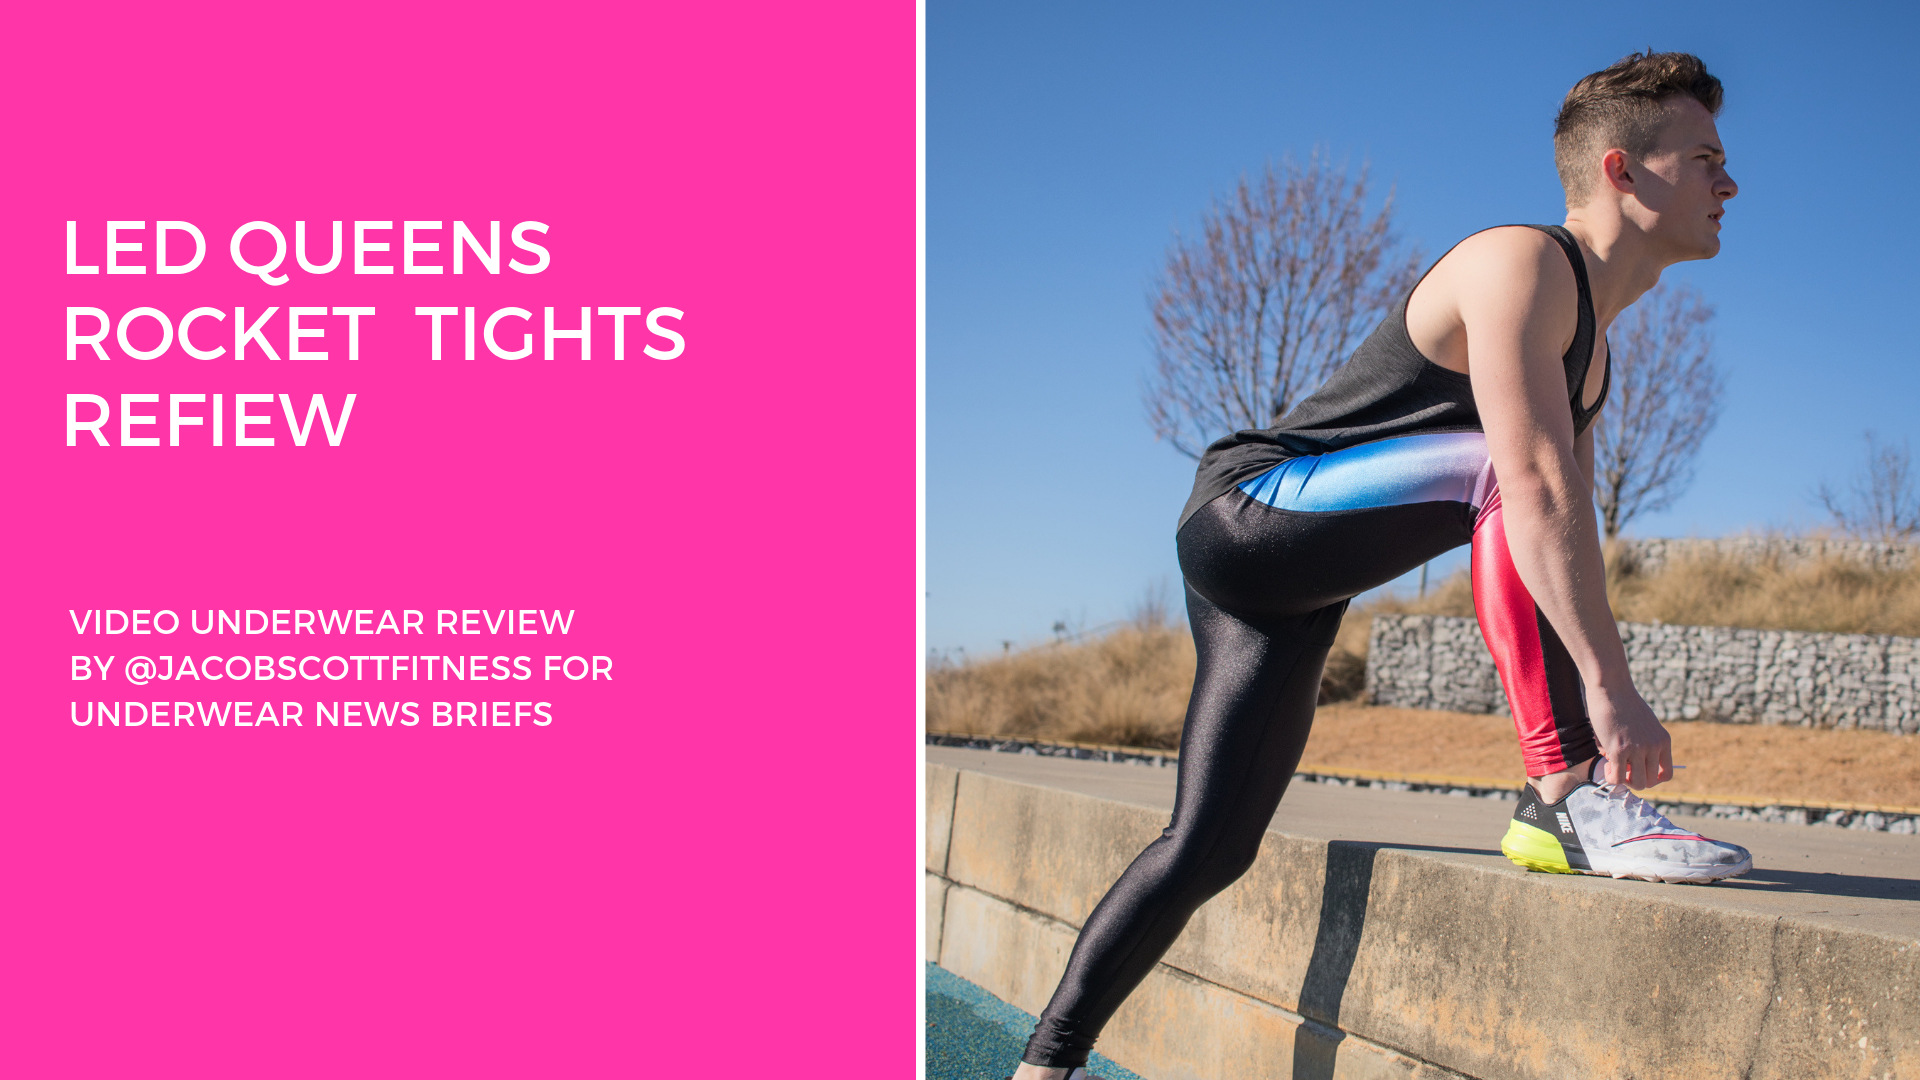 Video Review - LED Queens Rocket Tights